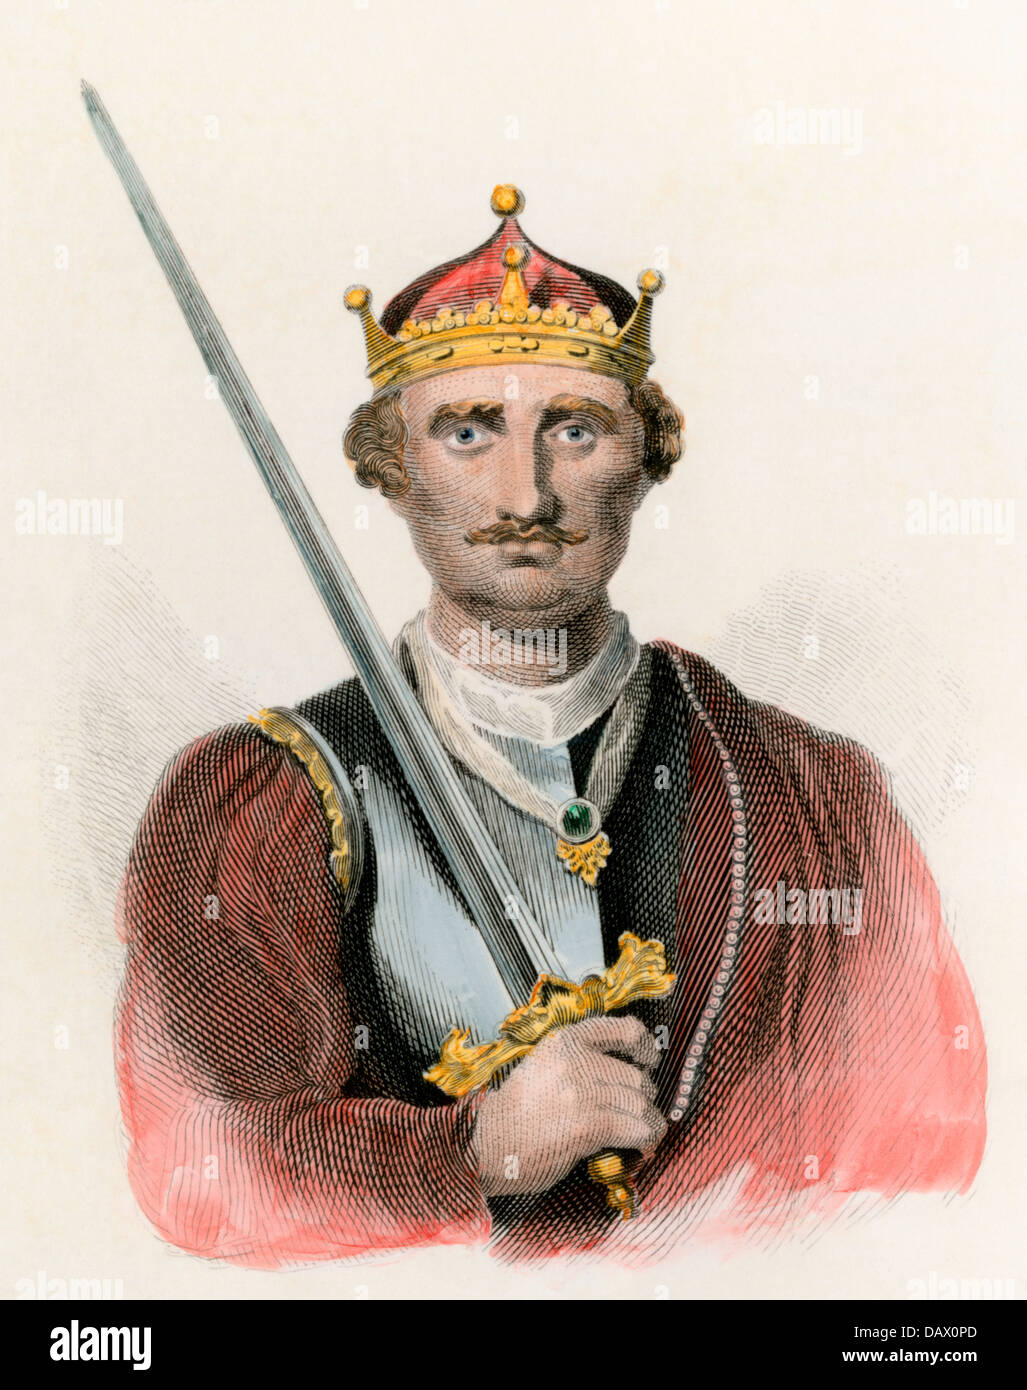 King of England William I, the Conqueror, carrying a sword. Hand-colored engraving Stock Photo